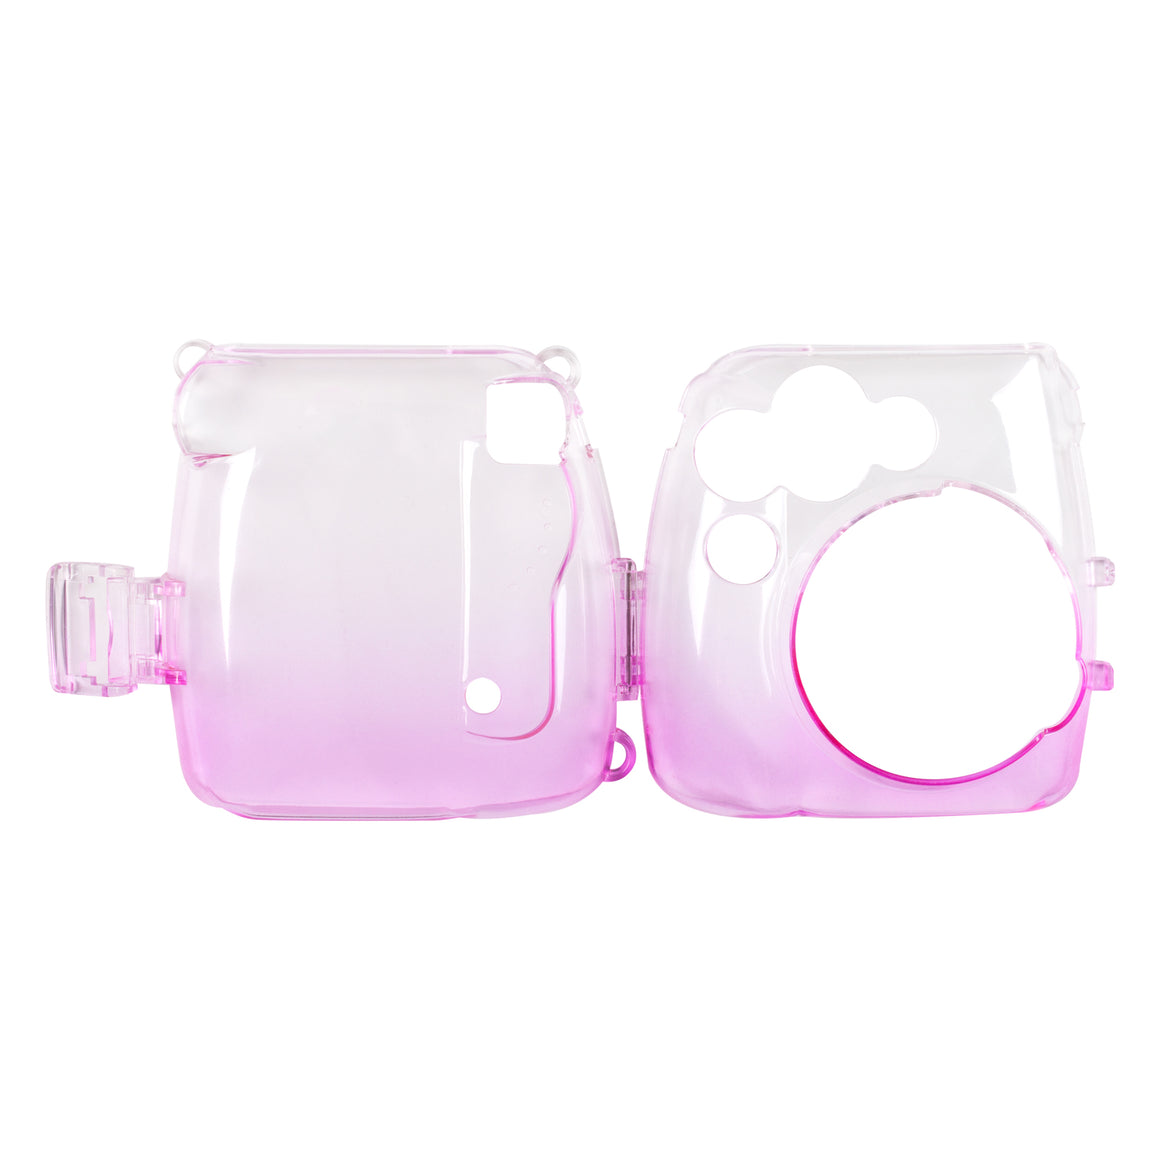 CYLO Pink Ombré Hard-Shell Instax Camera Case